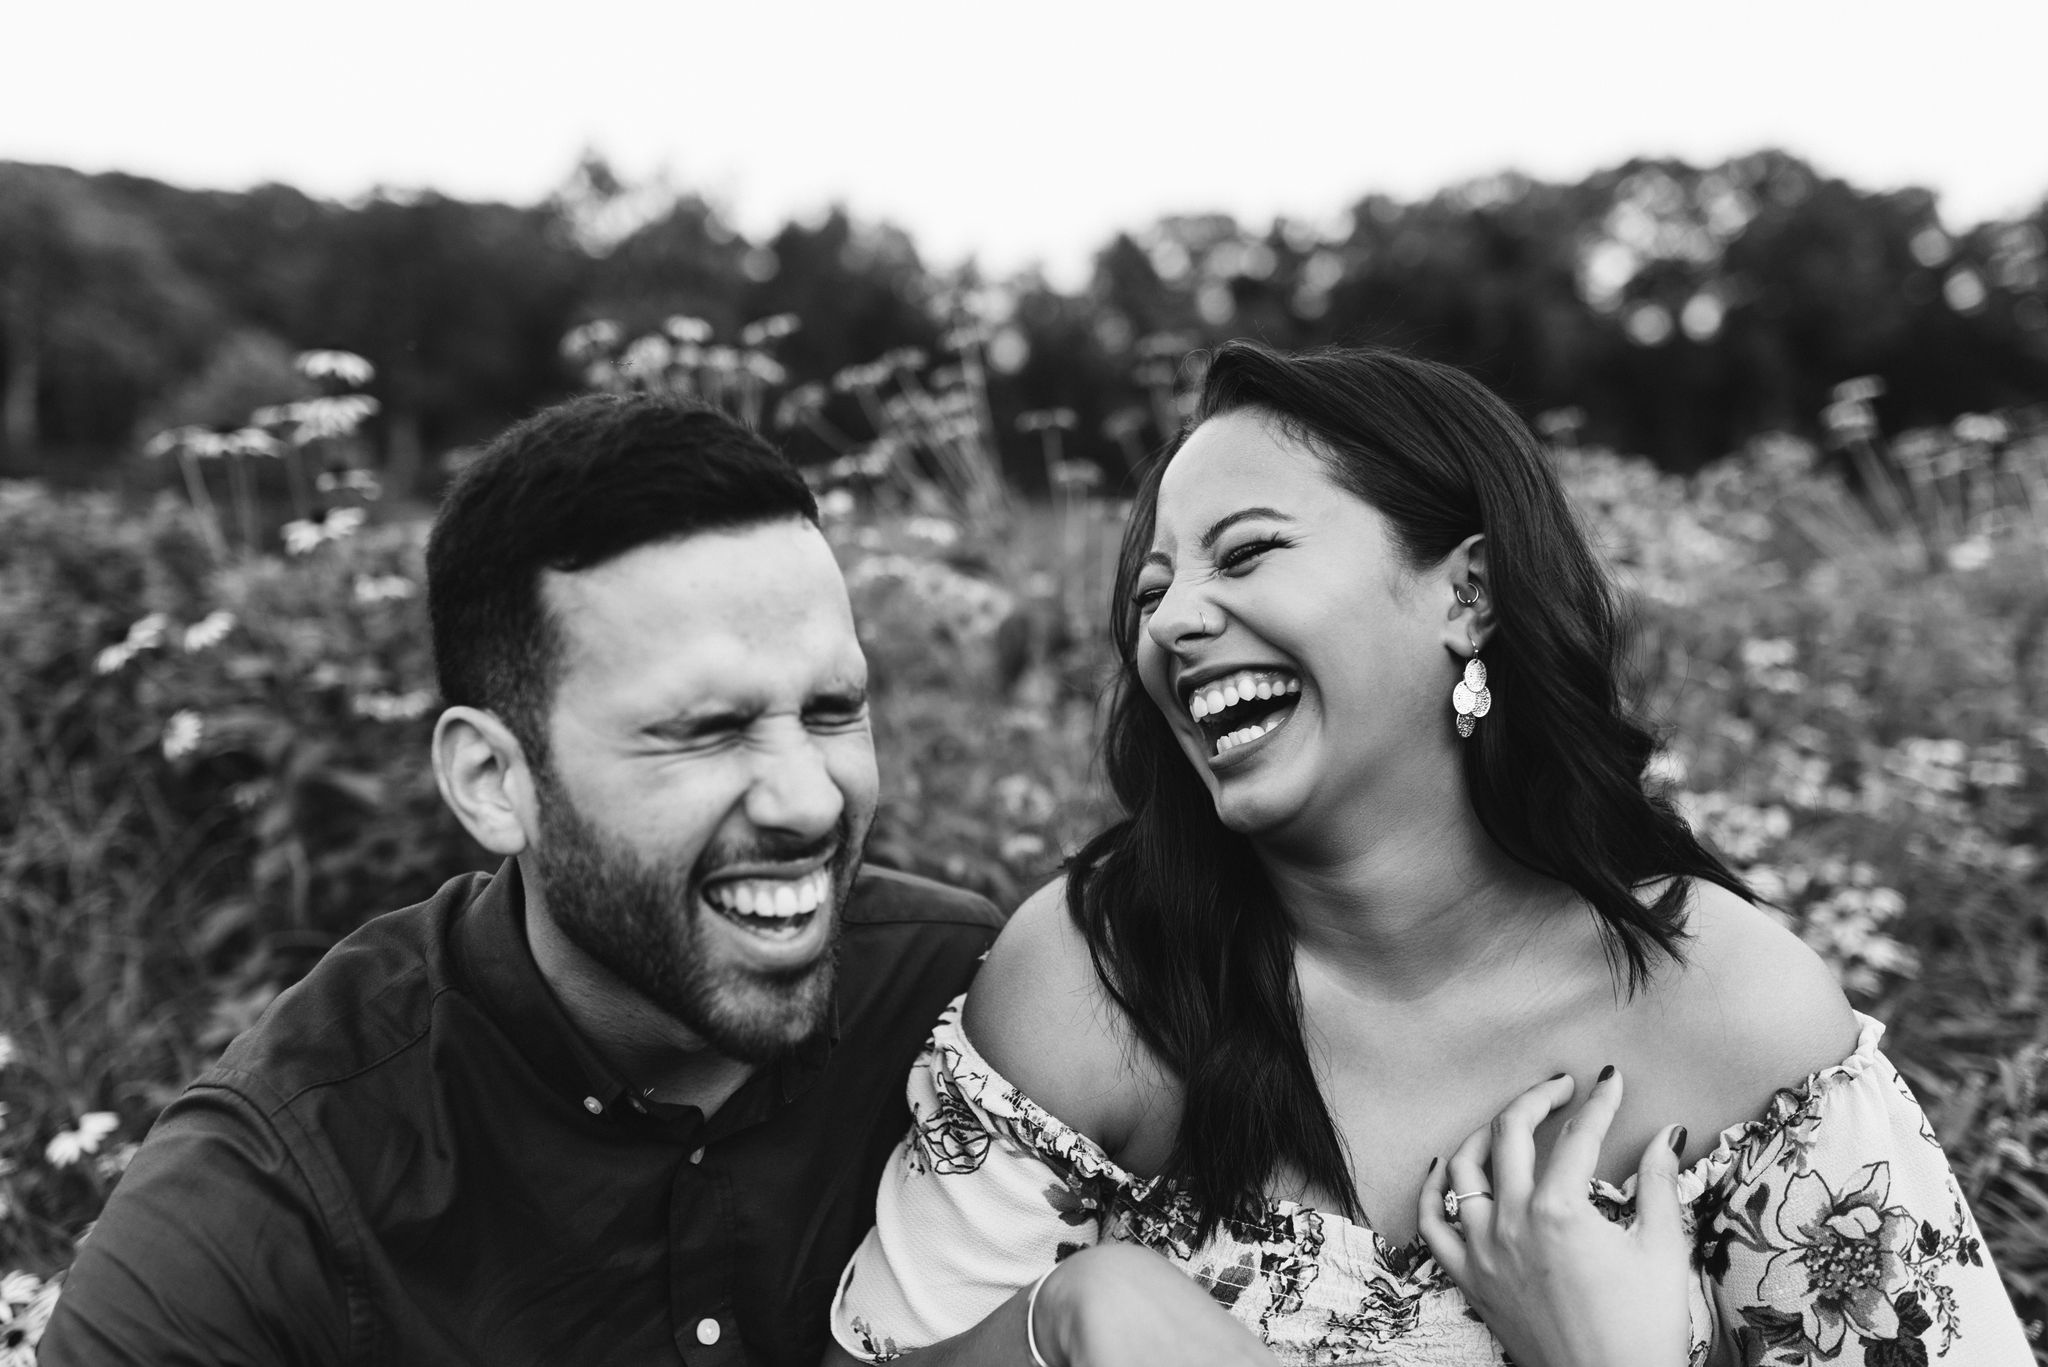 Frederick Maryland, Baltimore Wedding Photographer, Engagement, Bend in the River Farm, Outdoor, Rustic, Nature, Sweet Photo of Bride and Groom Laughing Together in a Field of Wildflowers, Black and White Photo